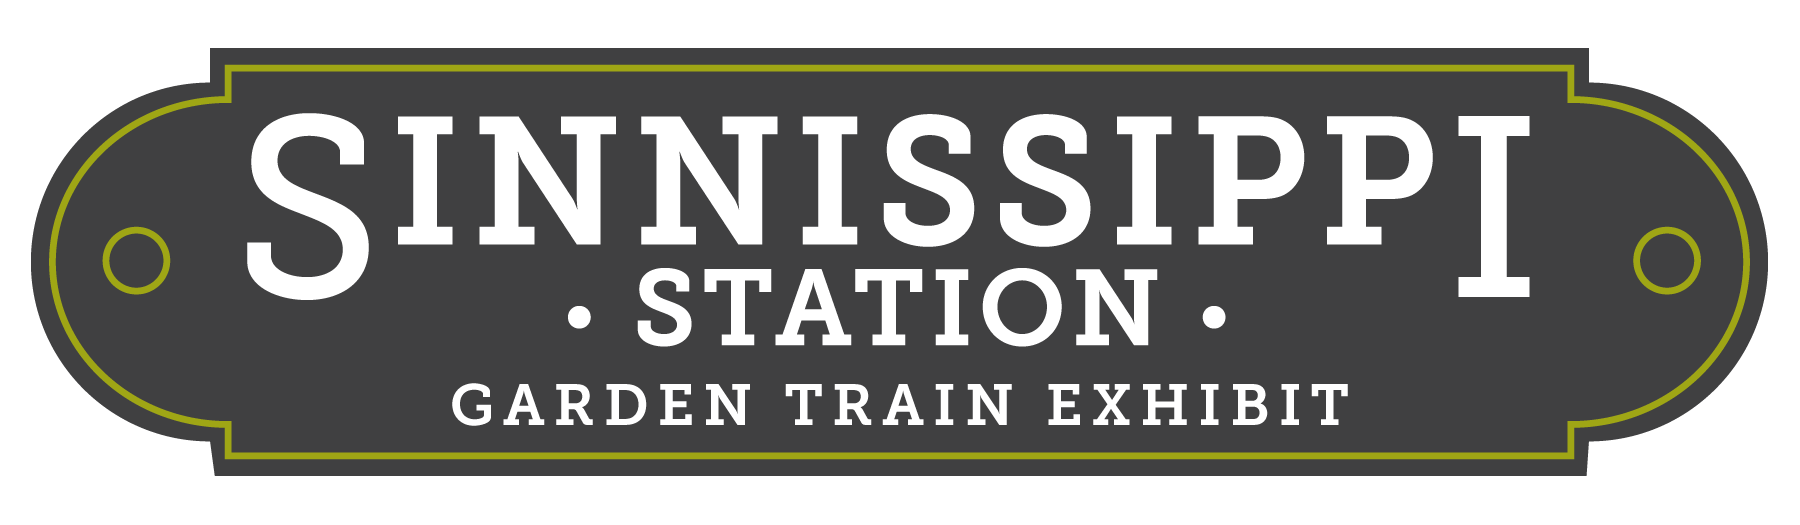 NCG_Sinnissippi_Station_logo_Badge-C.png